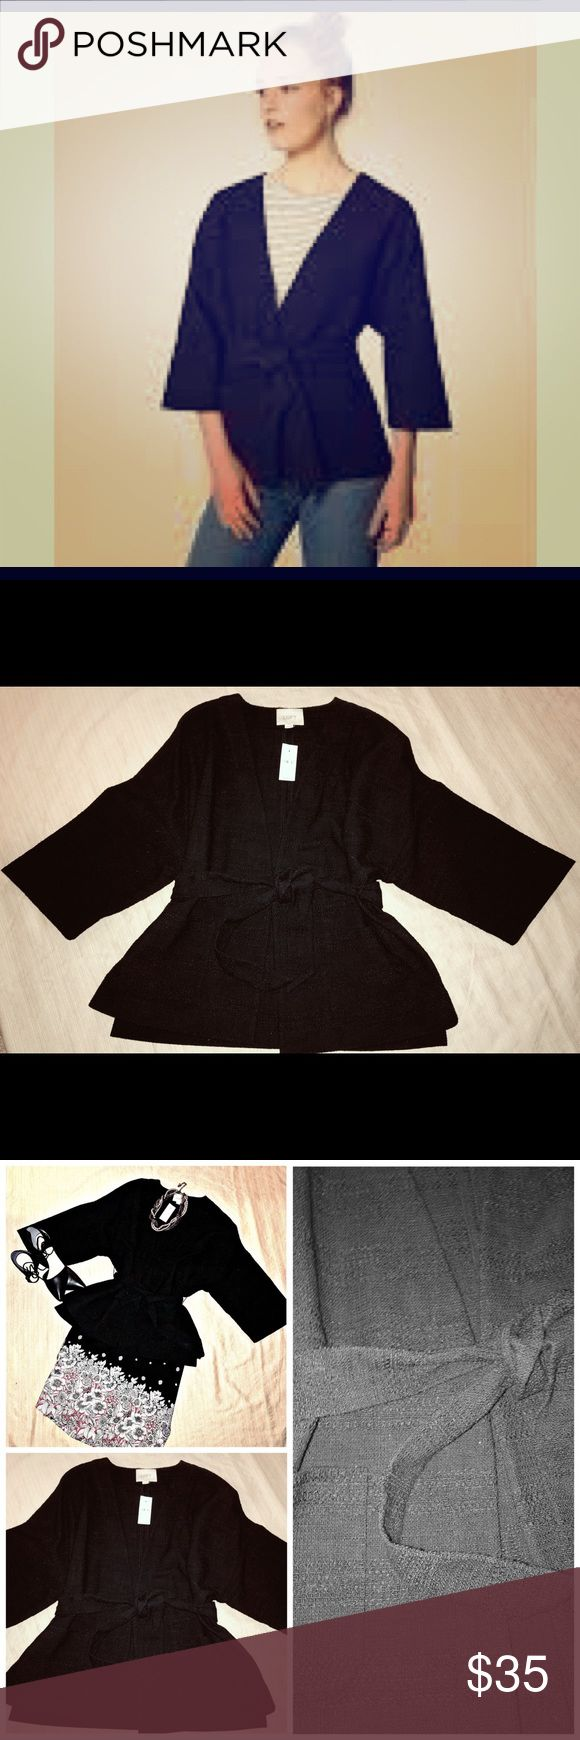 🆕 LOFT Black Kimono Wrap Jacket M/L Brand New with tag, 3/4 length Kimono sleeve black boucle fabric jacket. From day to night it's sure to be a hit. Size M/L but fits more like a medium through the hips. Tie waist with front welt pockets. Would style well with jeans, dress pants or skirt. Dress it up with a cami and jewelry or down with a ballet t-shirt.  Throw it over a dress to make it work appropriate and extend your wardrobe. LOFT Jackets & Coats Blazers